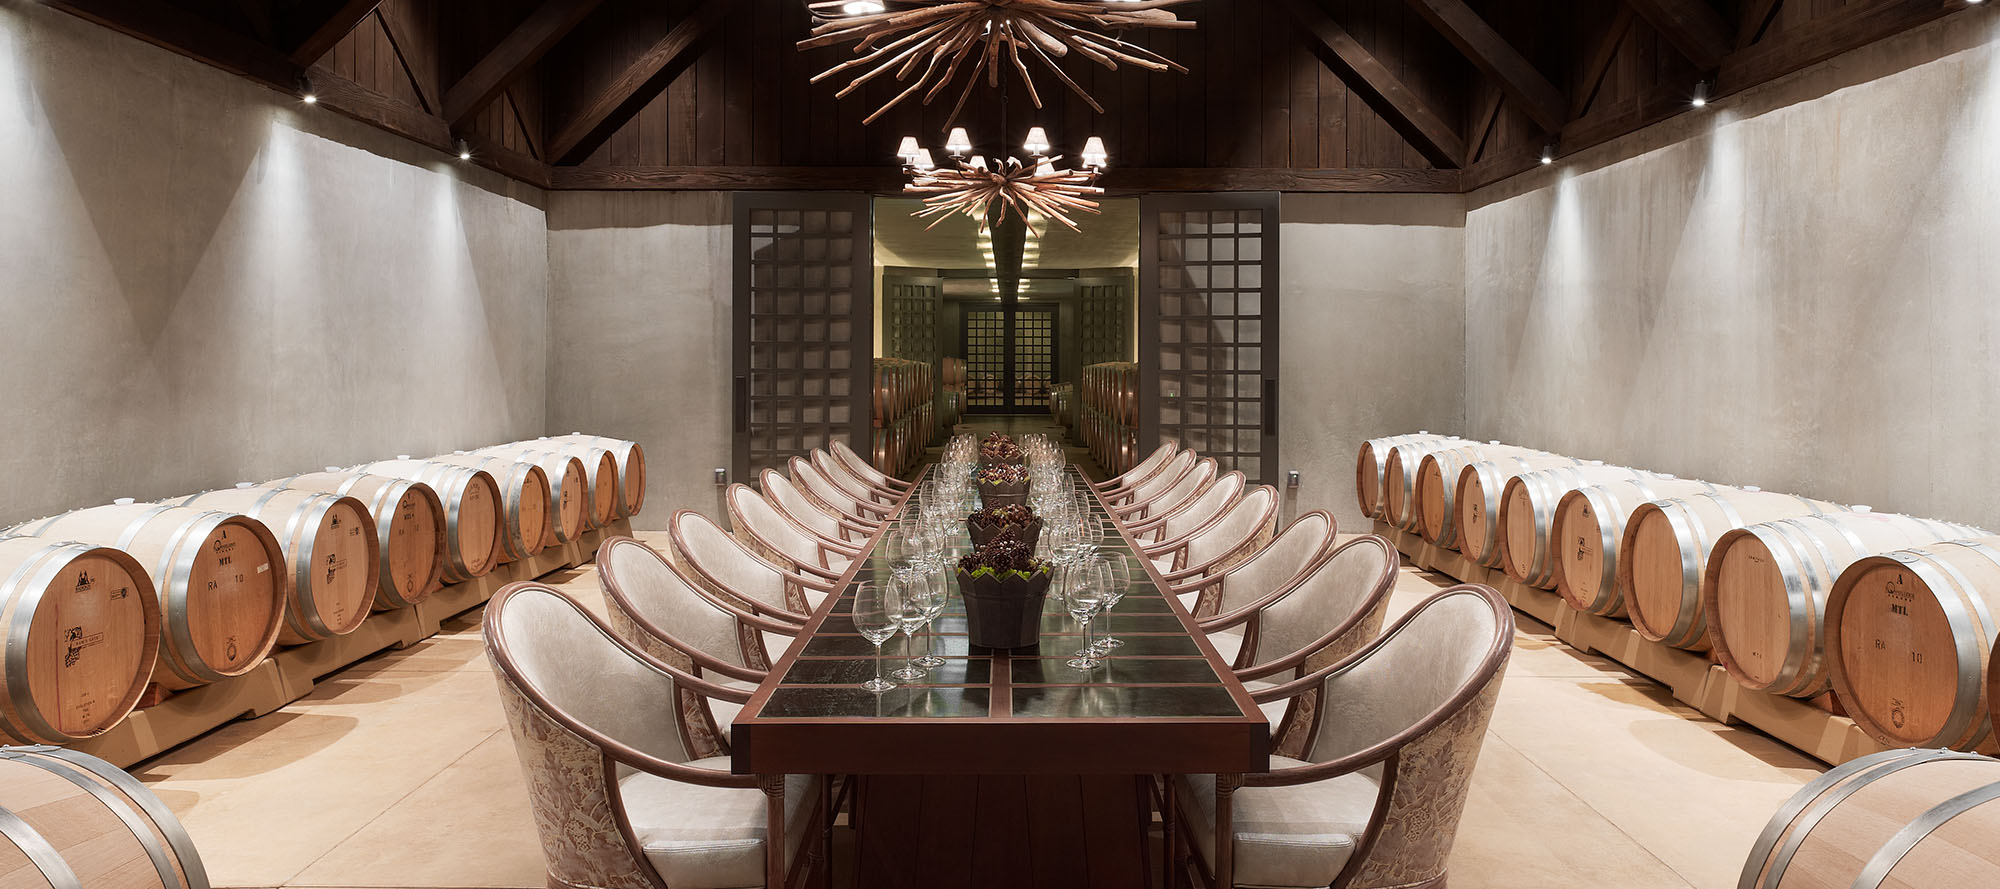 canopy furniture of room fine chicago restaurant dining luxury design hospitality